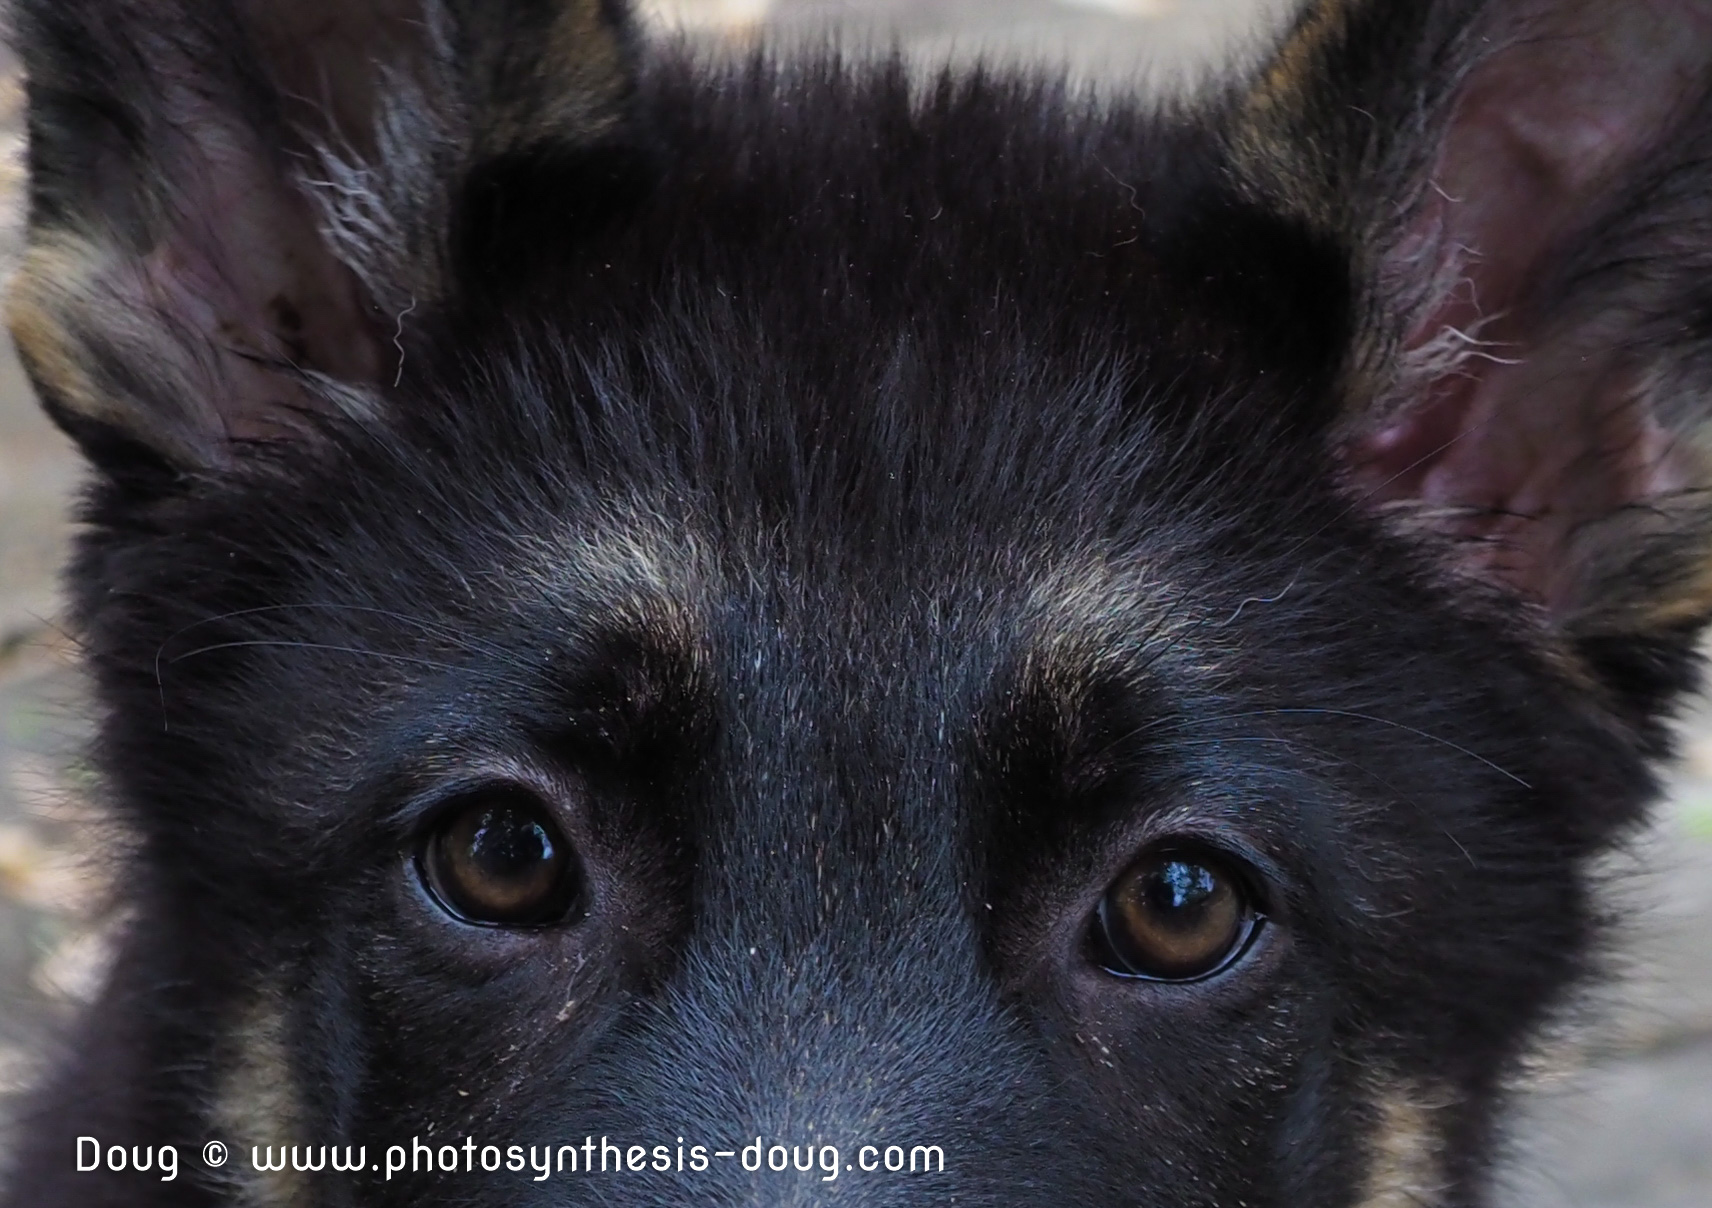 Eagle at 4 months, training to be a service dog to the blind. Photo by Doug Coulson